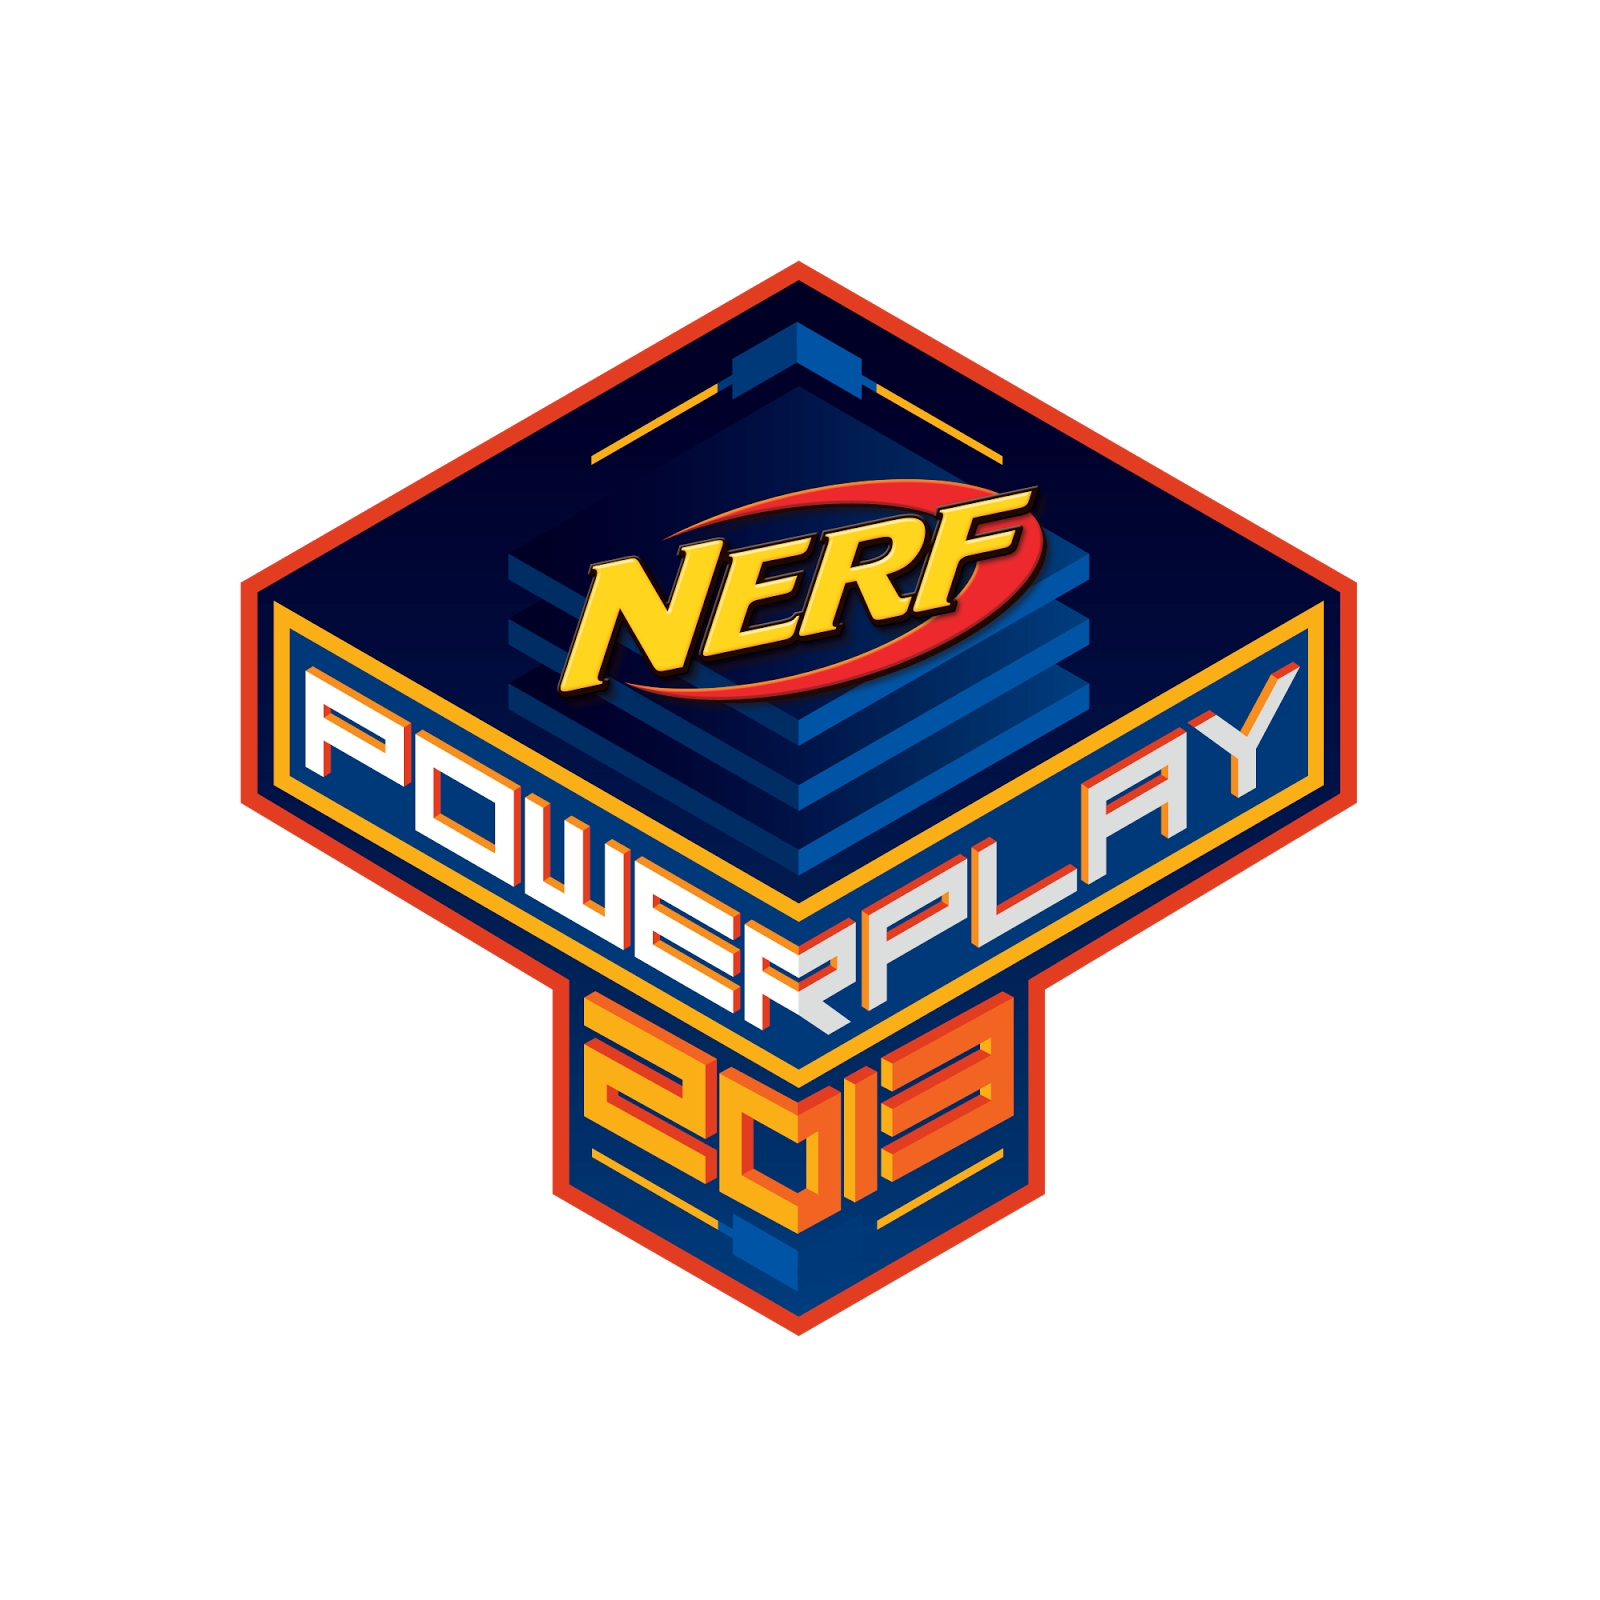 nerf powerplay logo #2193